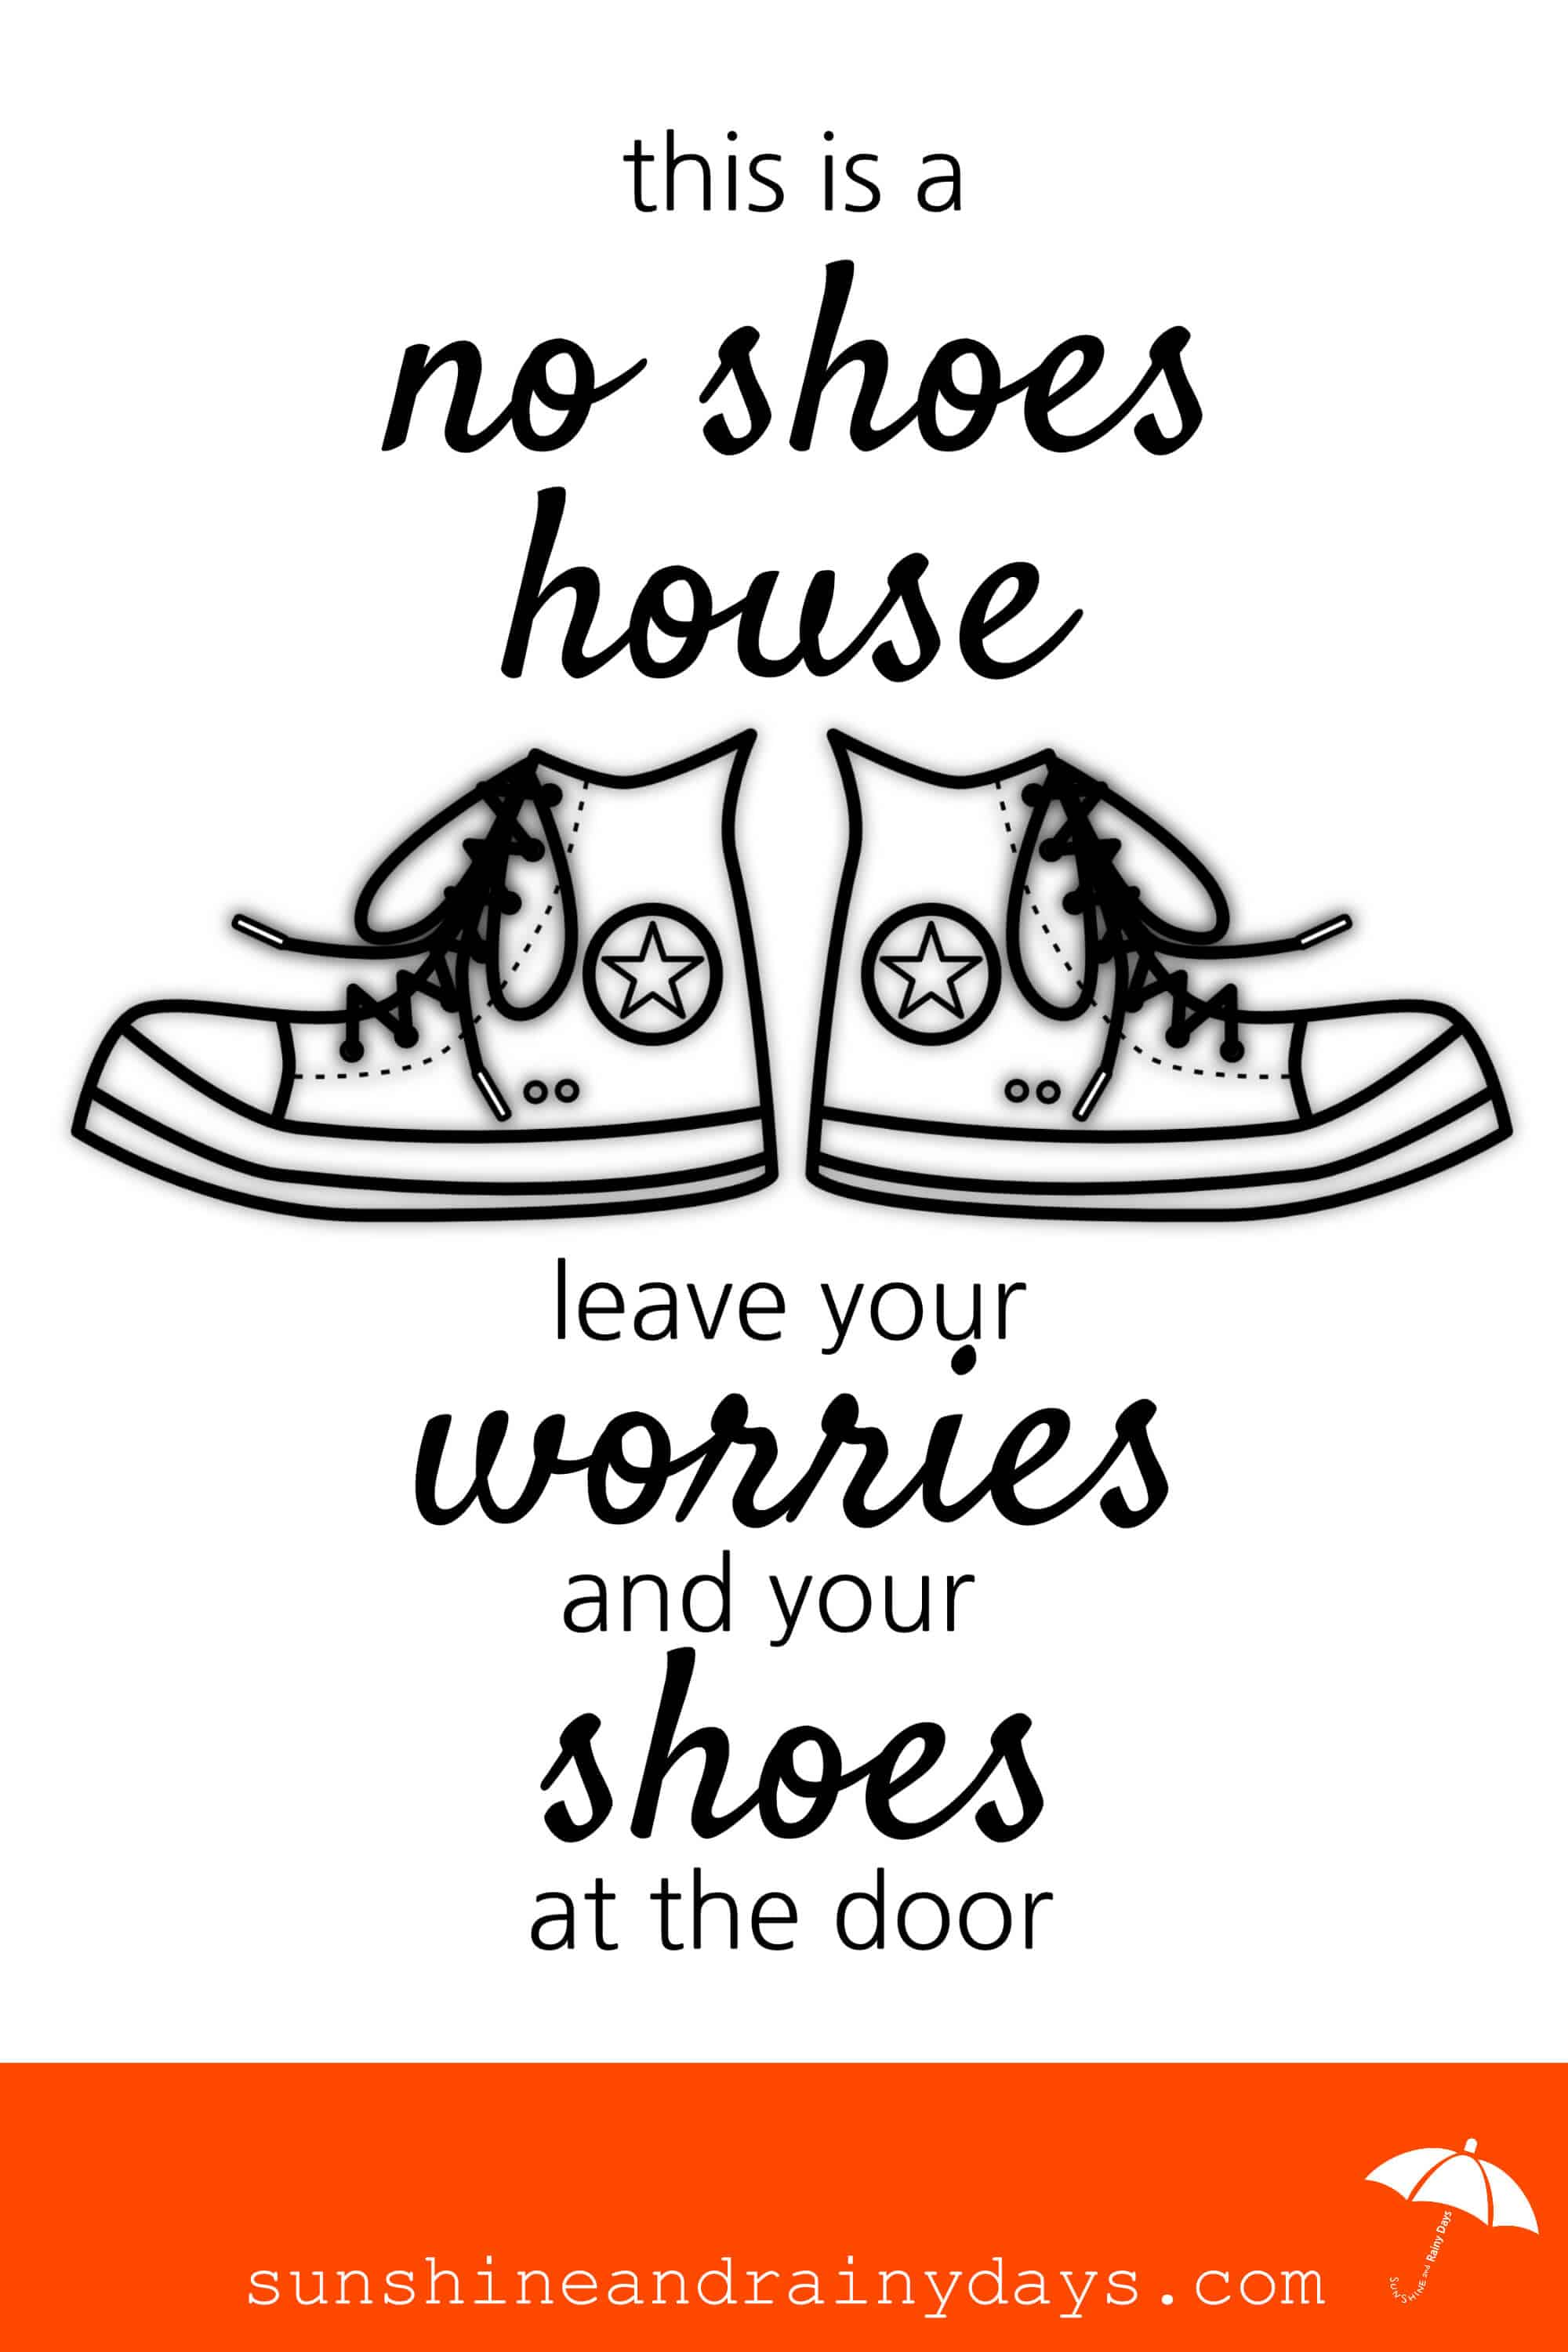 photograph about Please Remove Your Shoes Sign Printable Free referred to as How Towards Consider People in america Towards Choose Their Sneakers Off At The Doorway -